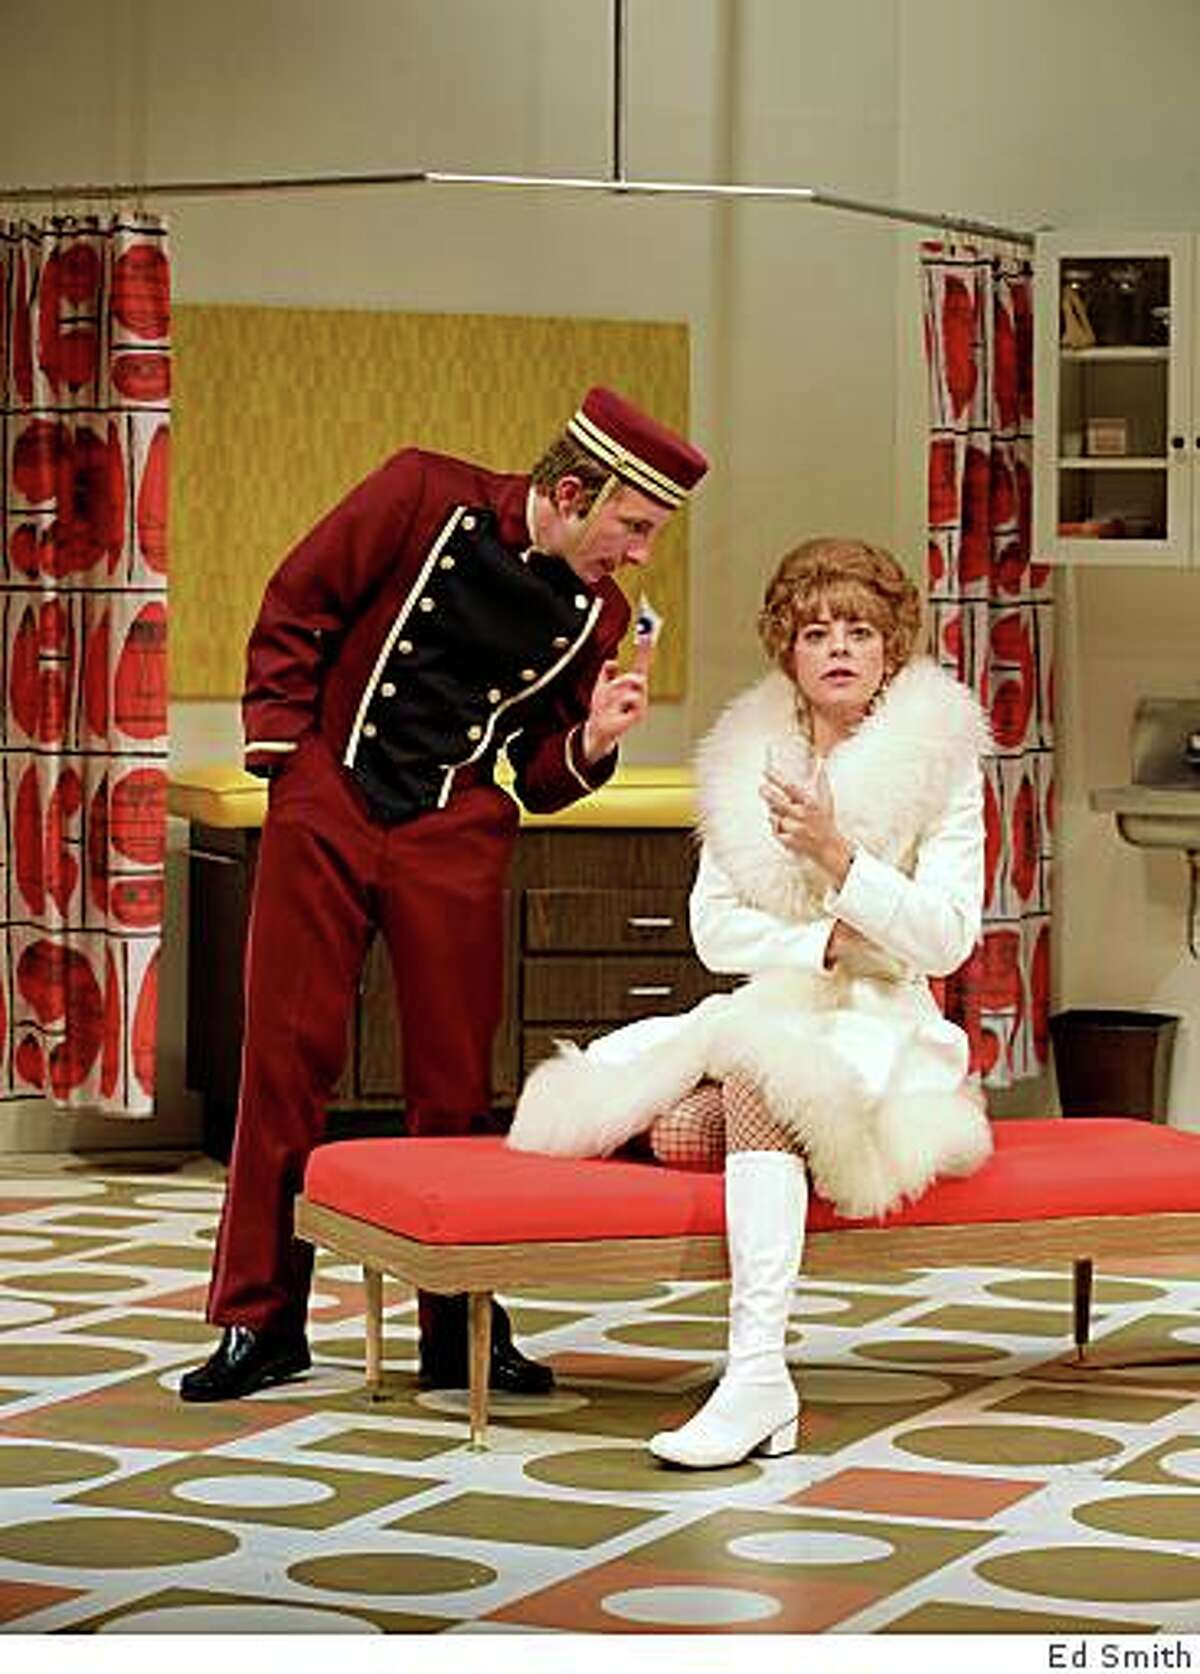 Rowan Brooks (left) as the bellboy and Stacy Ross as Mrs. Prentice, a philandering doctor's not so innocent wife, in Joe Orton's